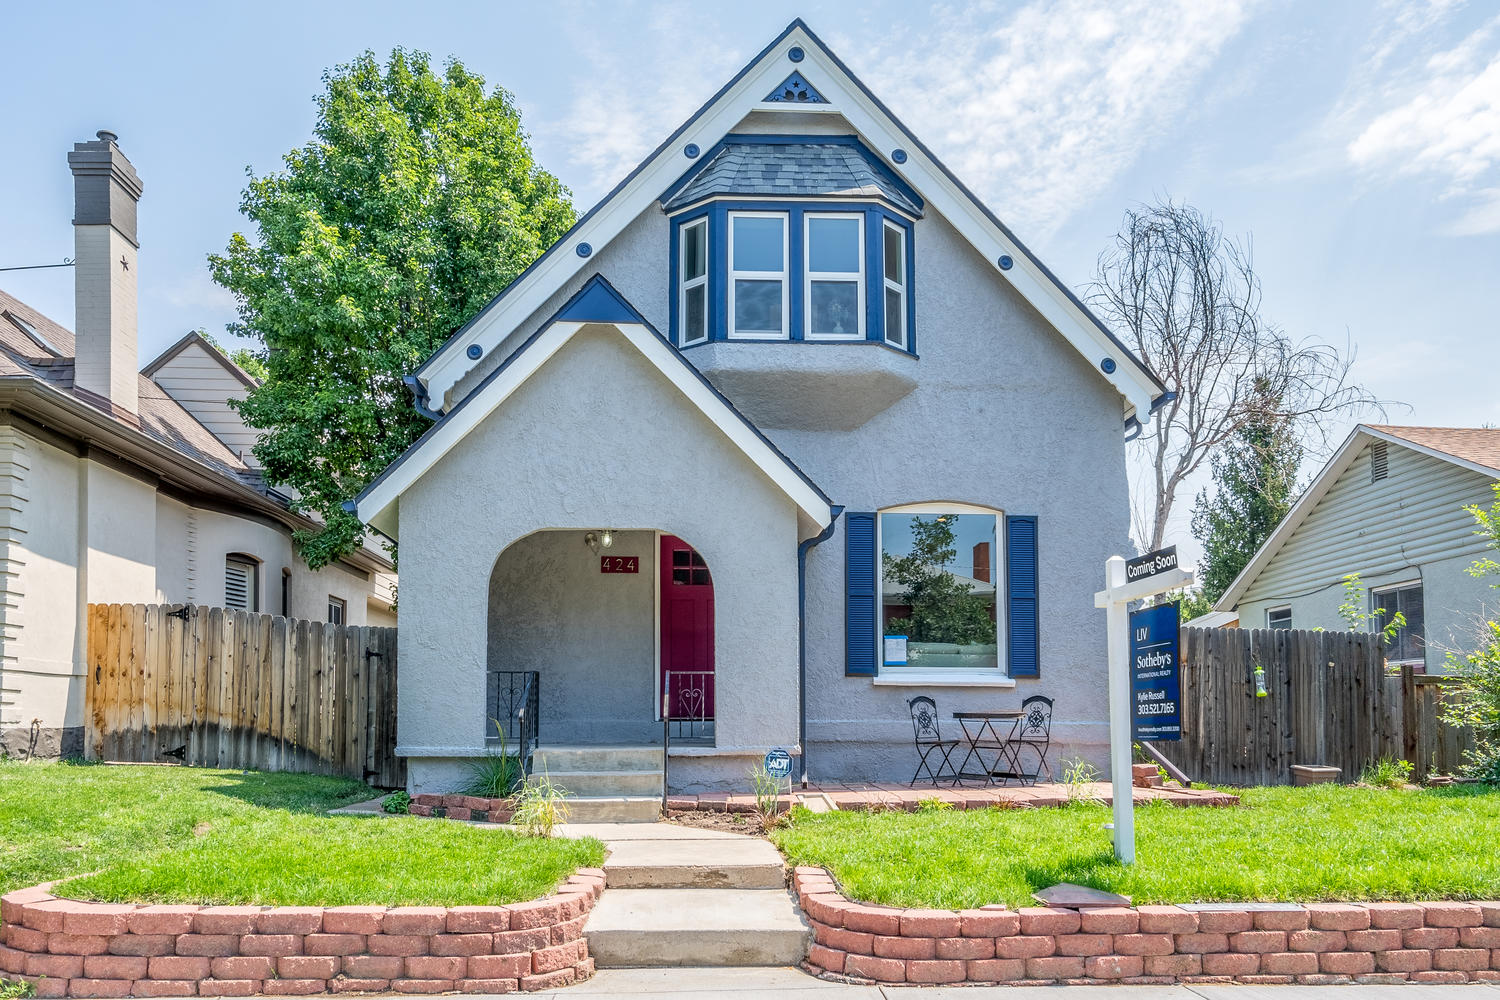 Single Family Home for Sale at Hip and Historic Chic Victorian 424 Clarkson Street Denver, Colorado, 80218 United States